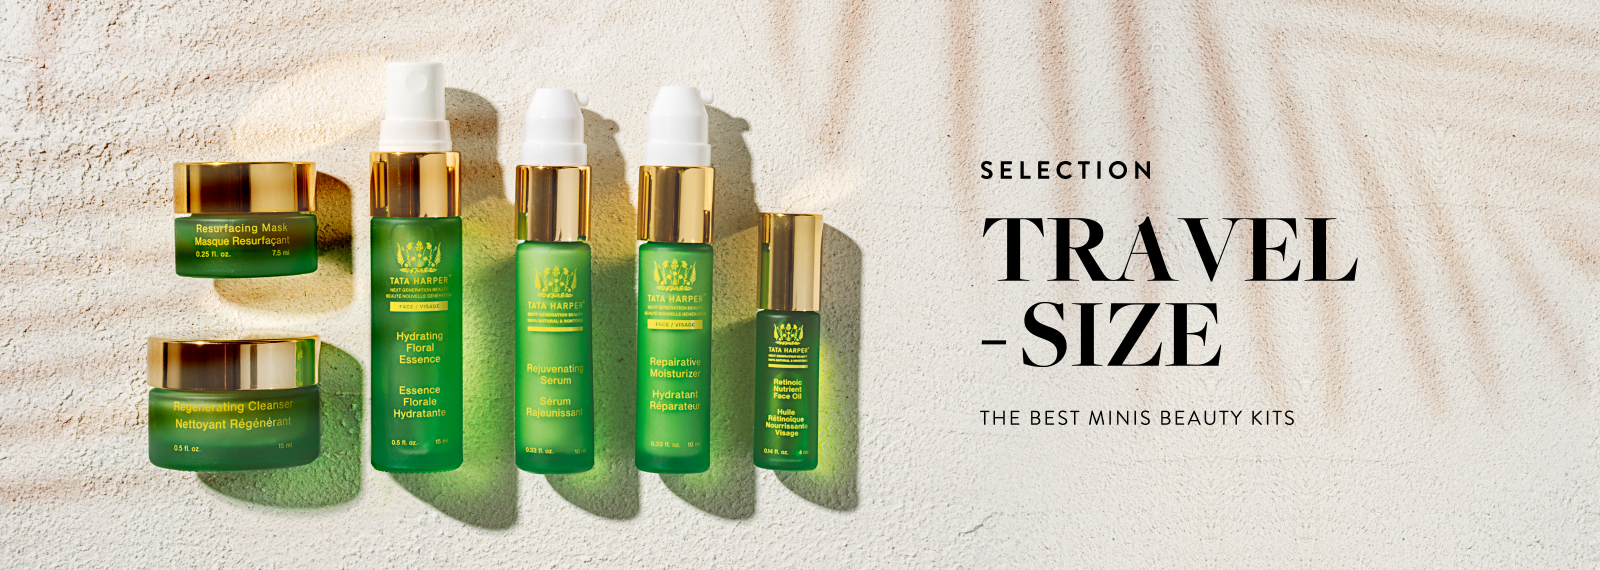 SELECTION - TRAVEL SIZE